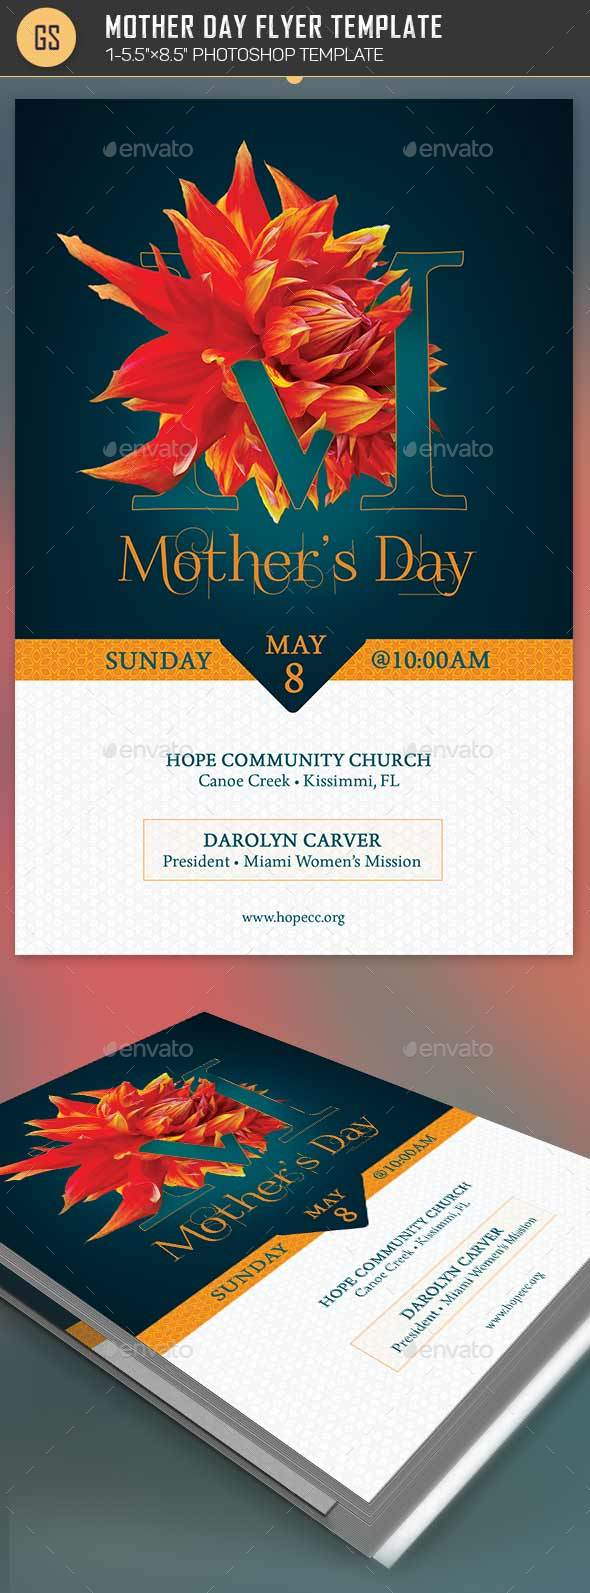 Mothers Day Flyer Photoshop Template By Godserv2 Graphicriver